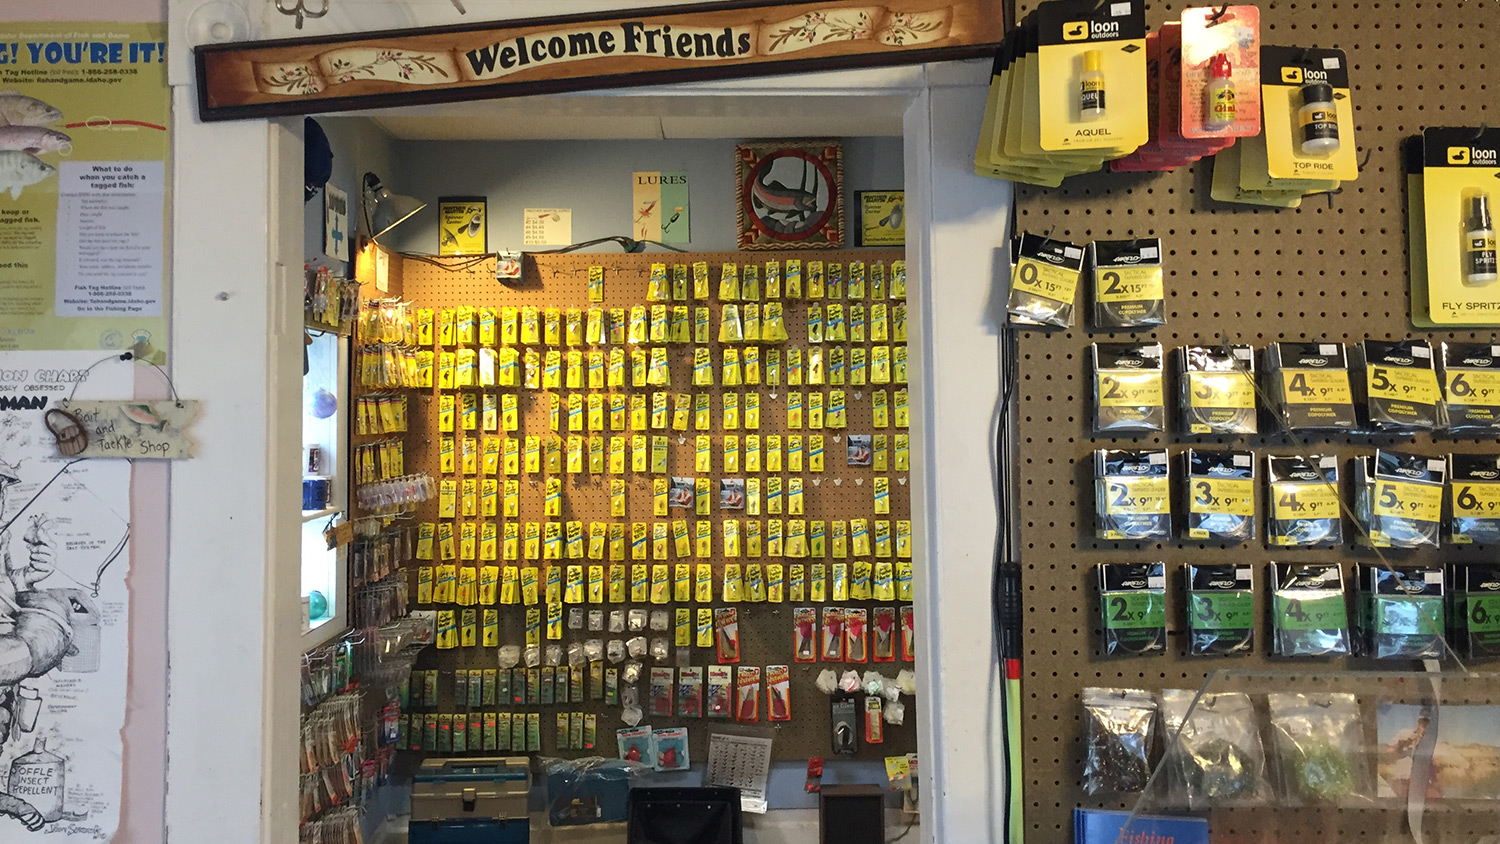 Inside the family's fly fishing equipment store.